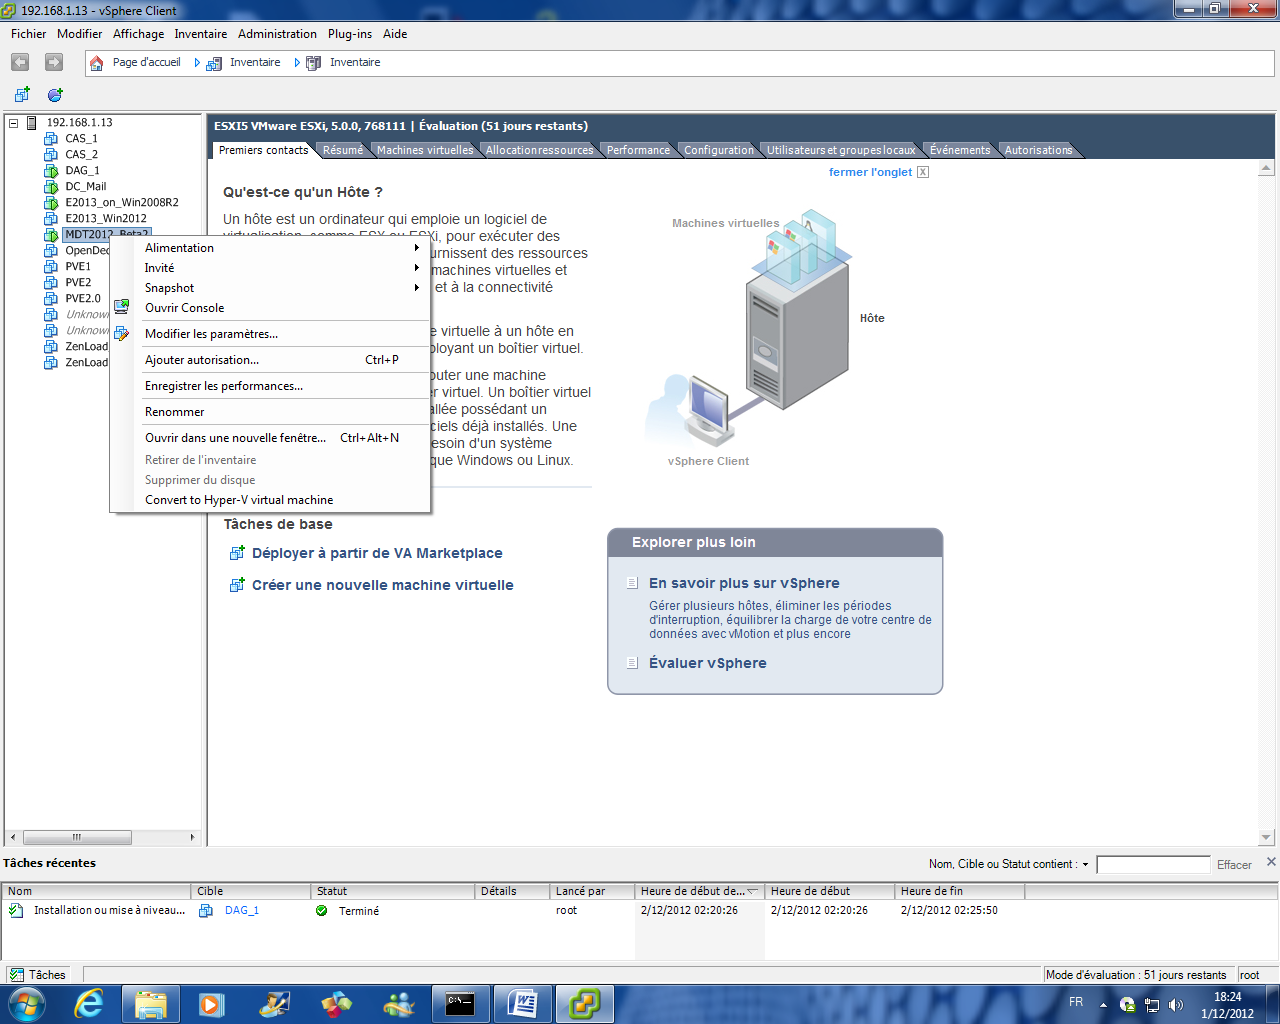 Migrate from Vmware to Hyper-V using MS Virtual Machine